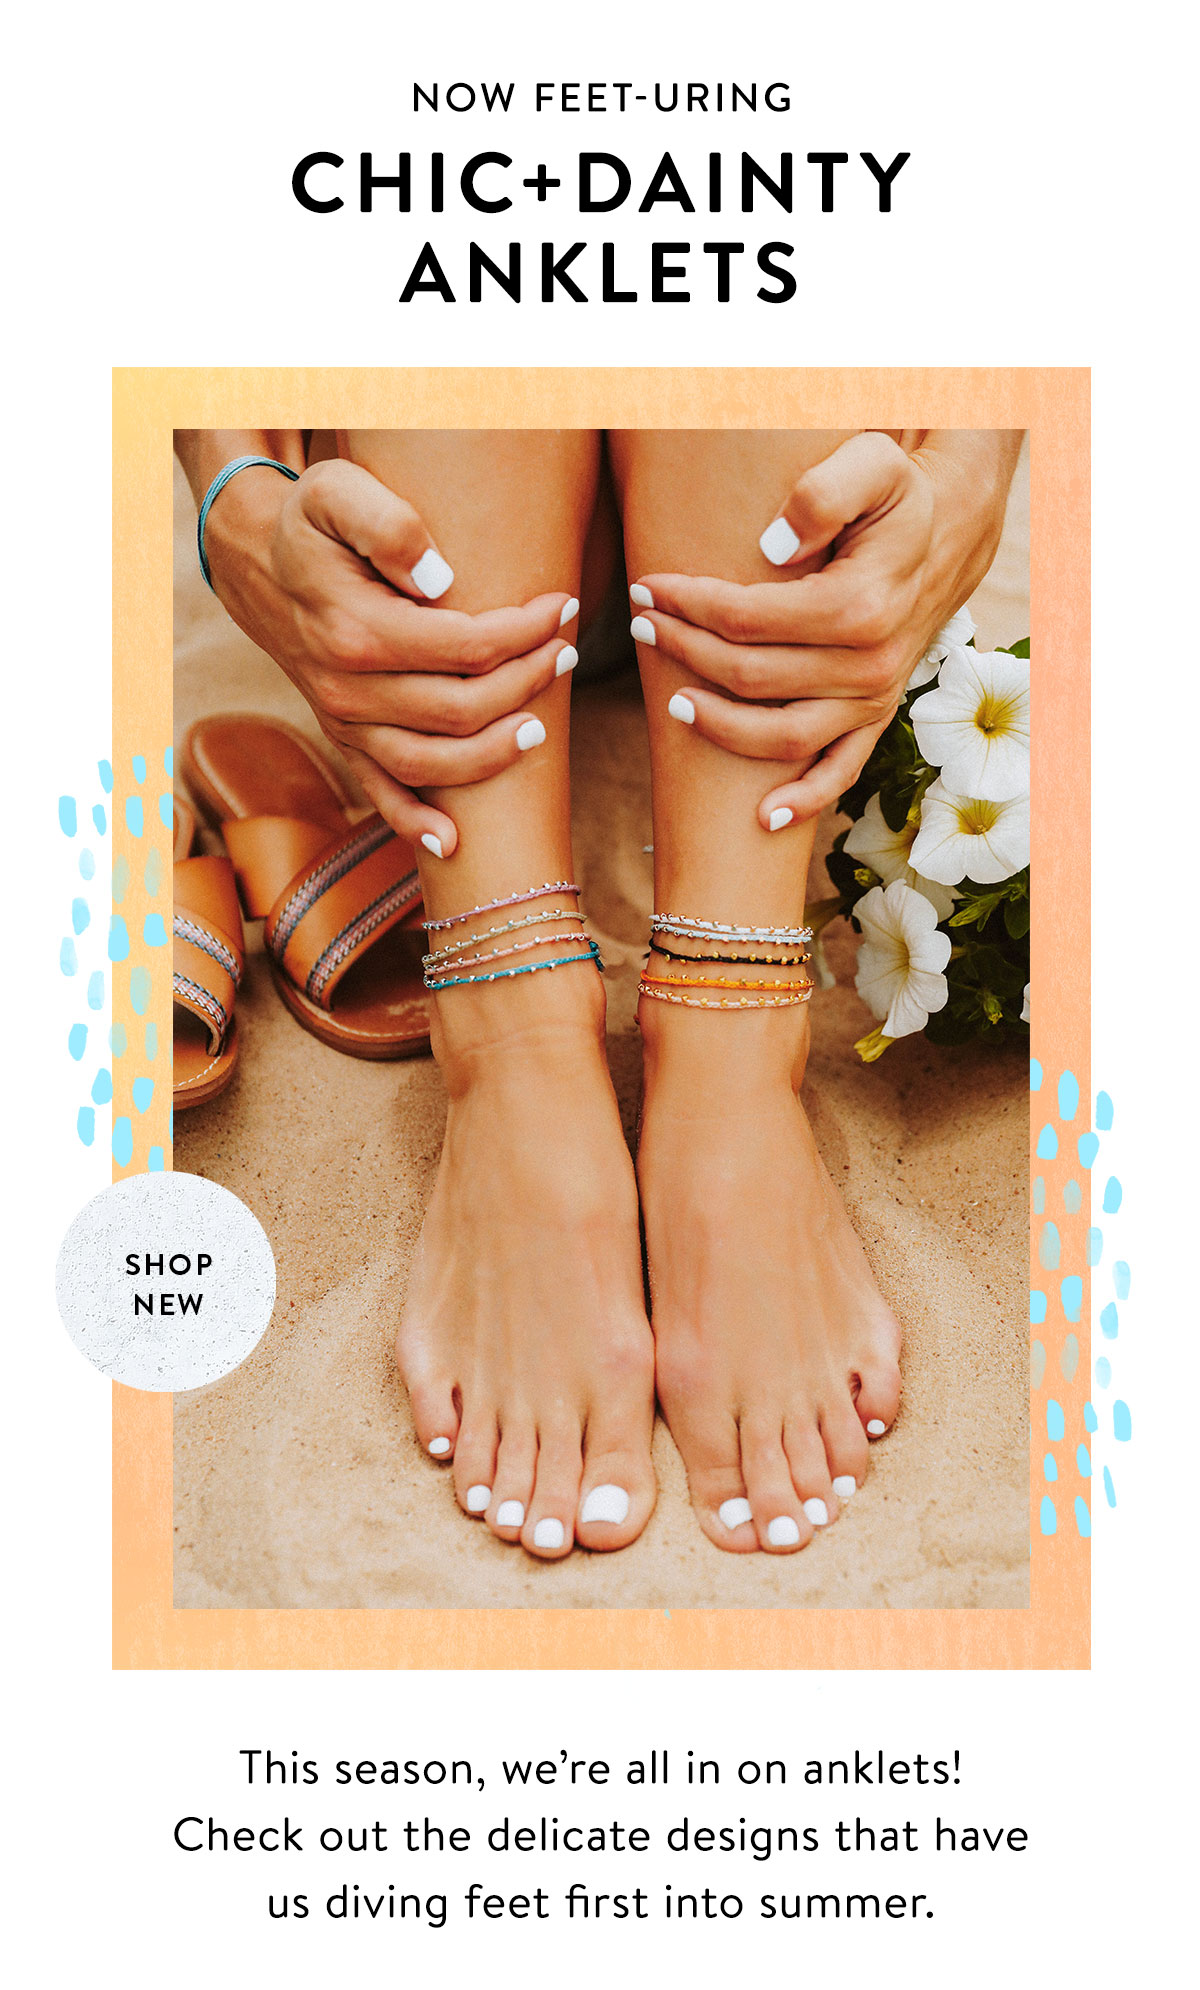 Now Feet-uring: Chic + Dainty Anklets | SHOP NEW >